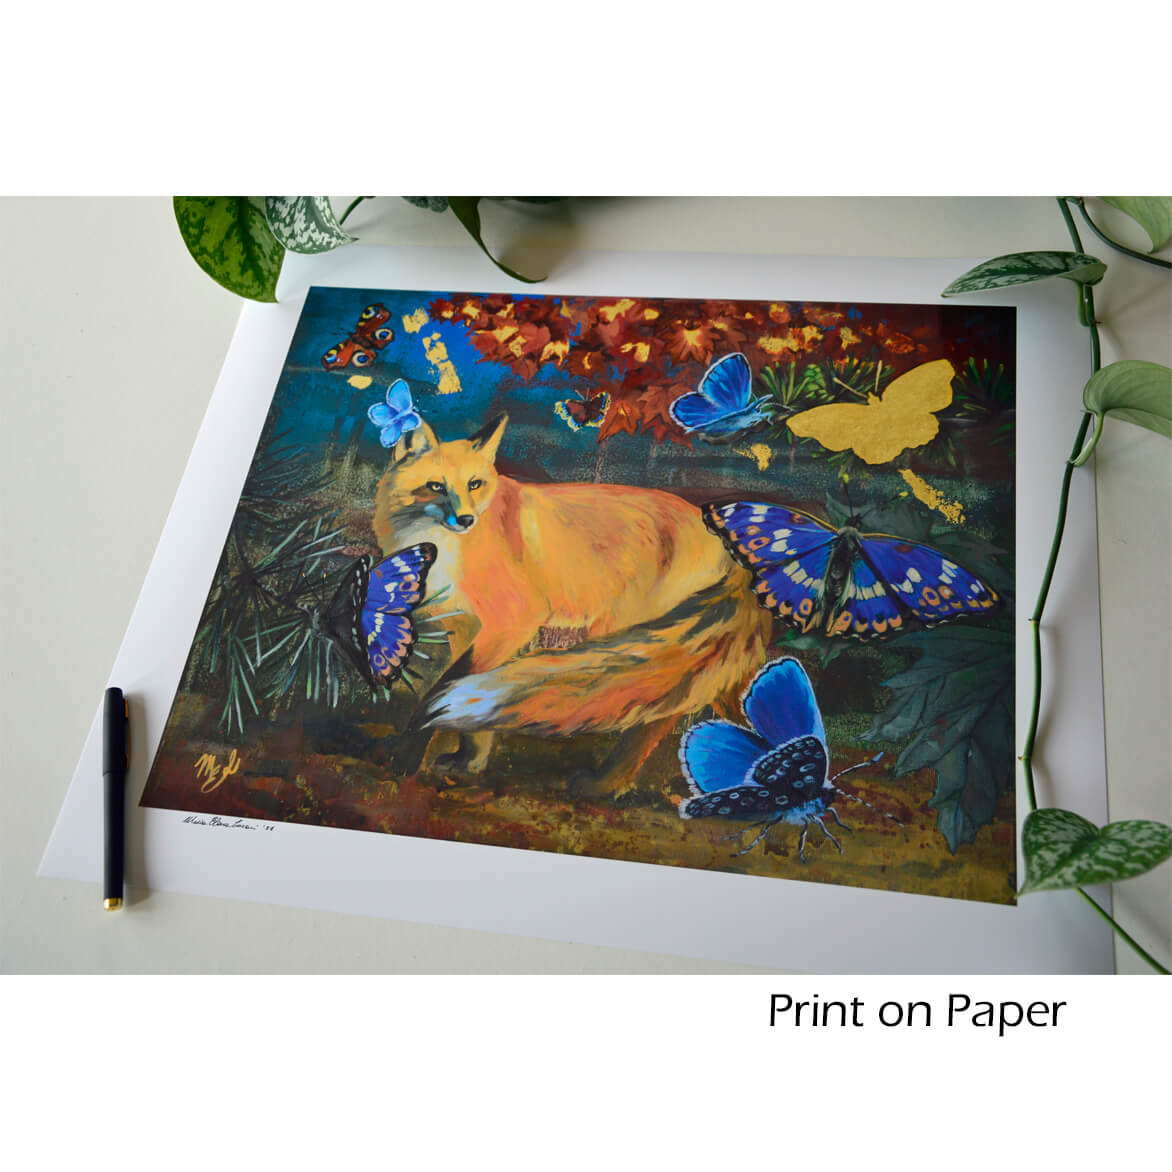 Image of a print on Paper with wildlife art.